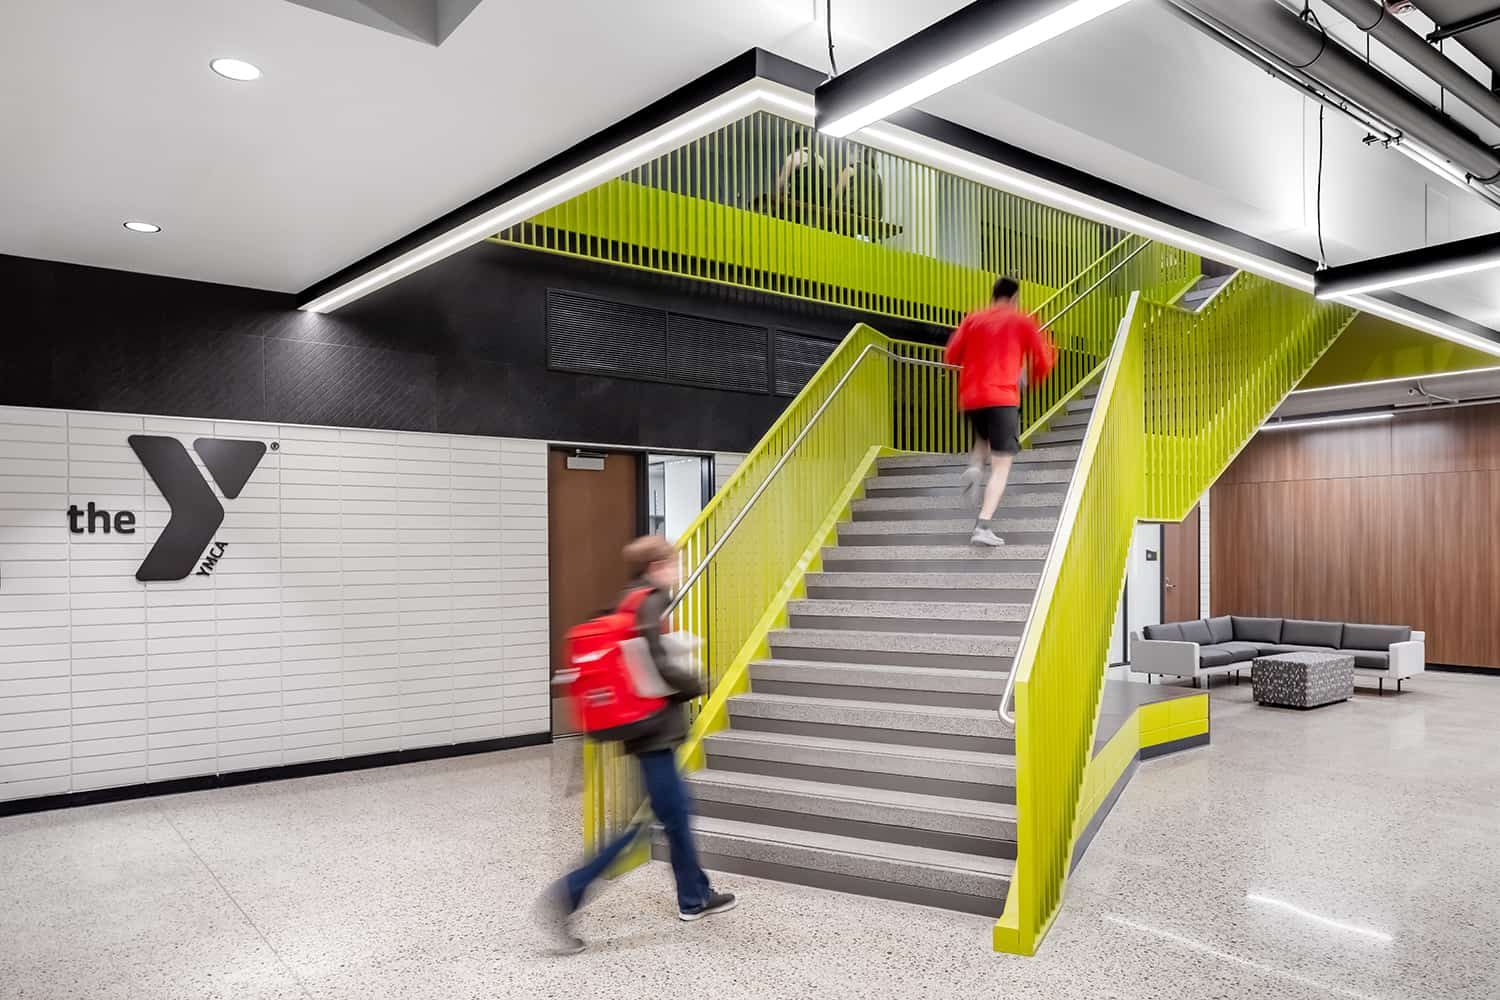 A bright green staircase invites gym-goers to take the stairs, and a seating alcove provides a quiet place for a post-workout rest.